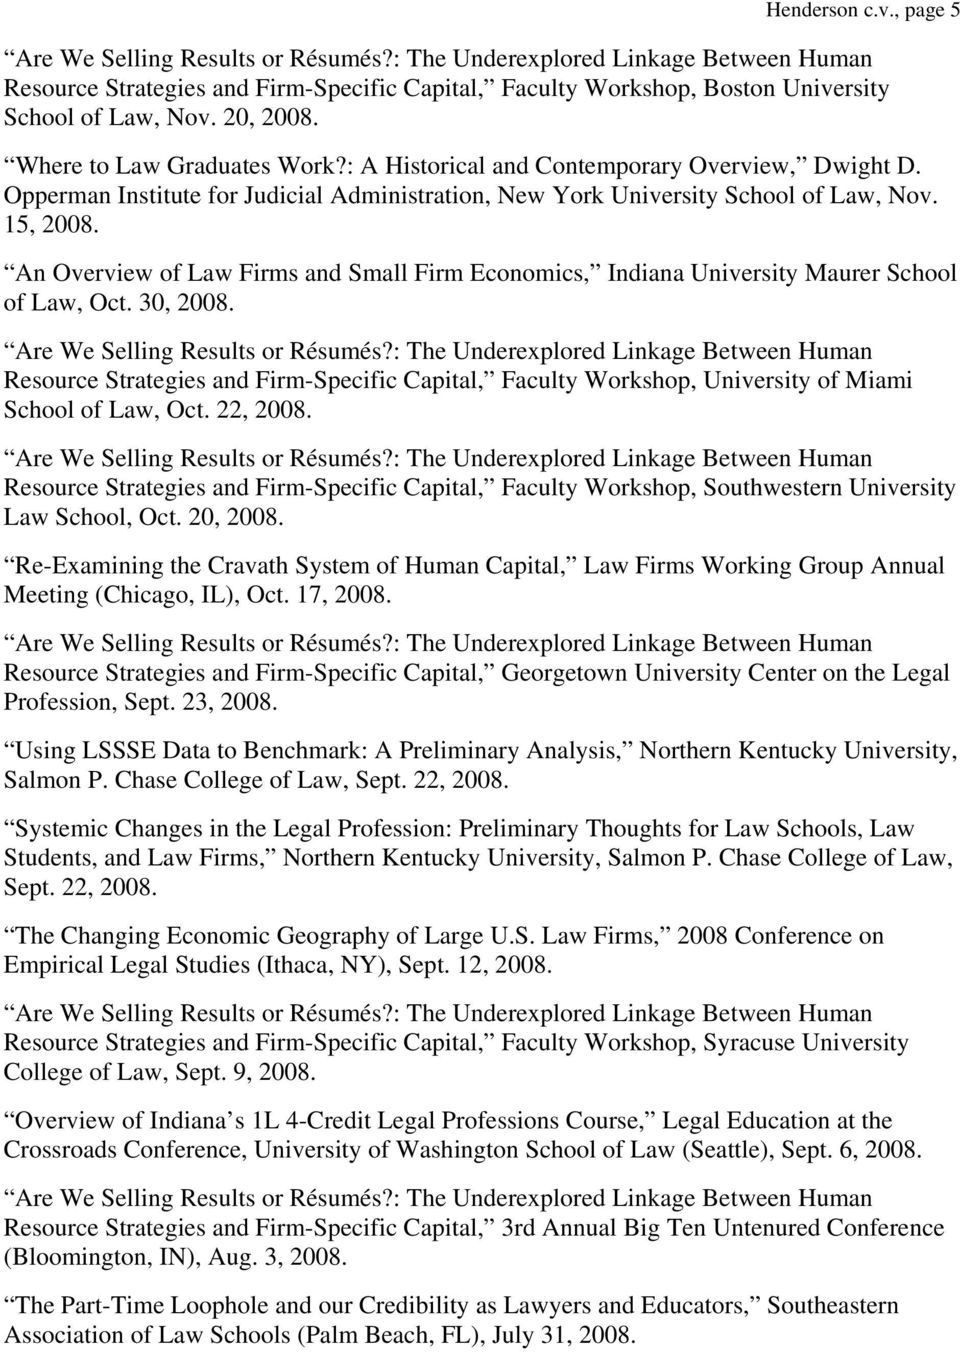 An Overview of Law Firms and Small Firm Economics, Indiana University Maurer School of Law, Oct. 30, 2008.